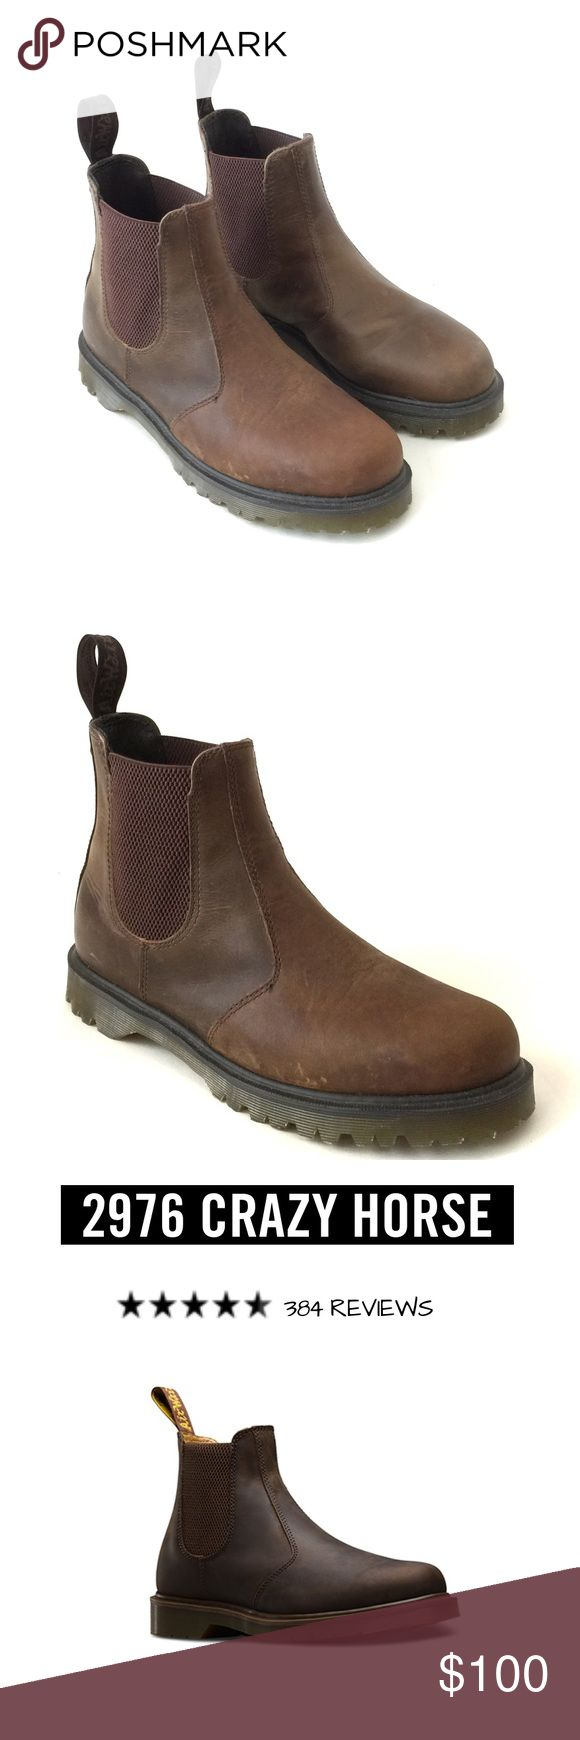 17 Best ideas about Mens Brown Boots on Pinterest | Brown boots ...